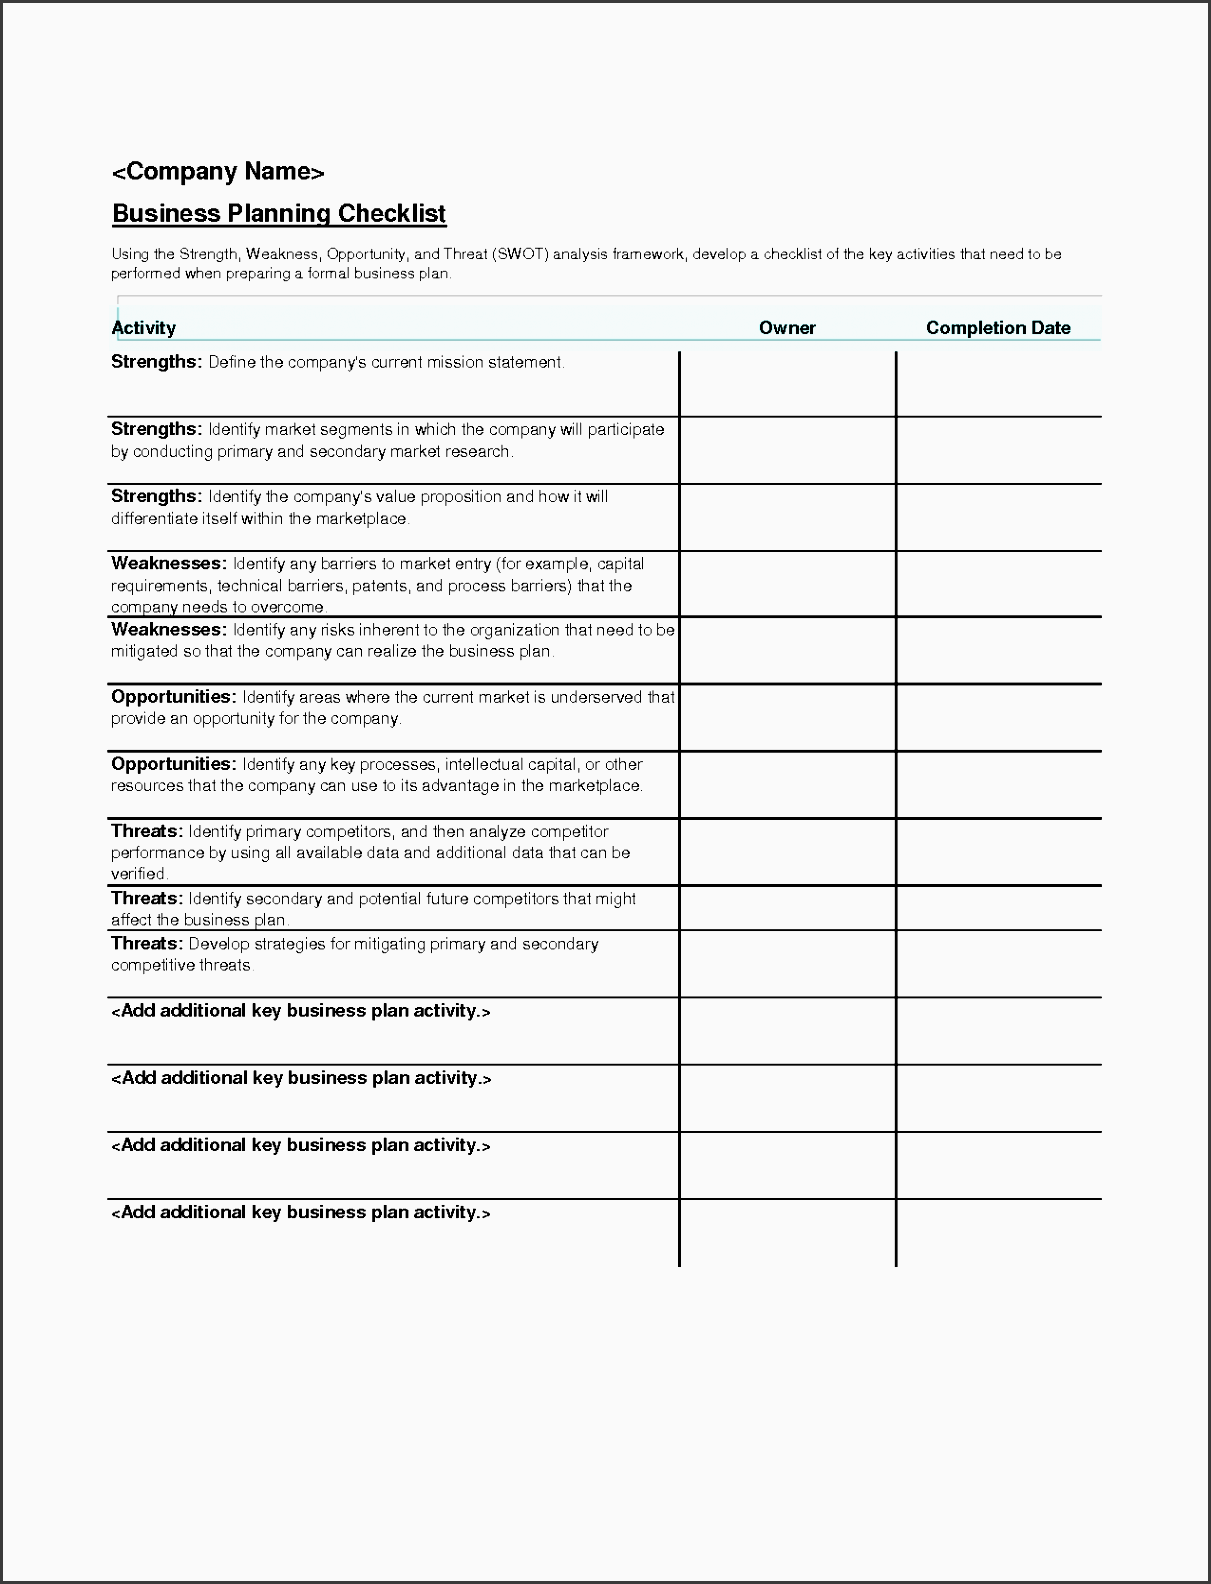 5 conference planning checklist design sampletemplatess for Home design checklist